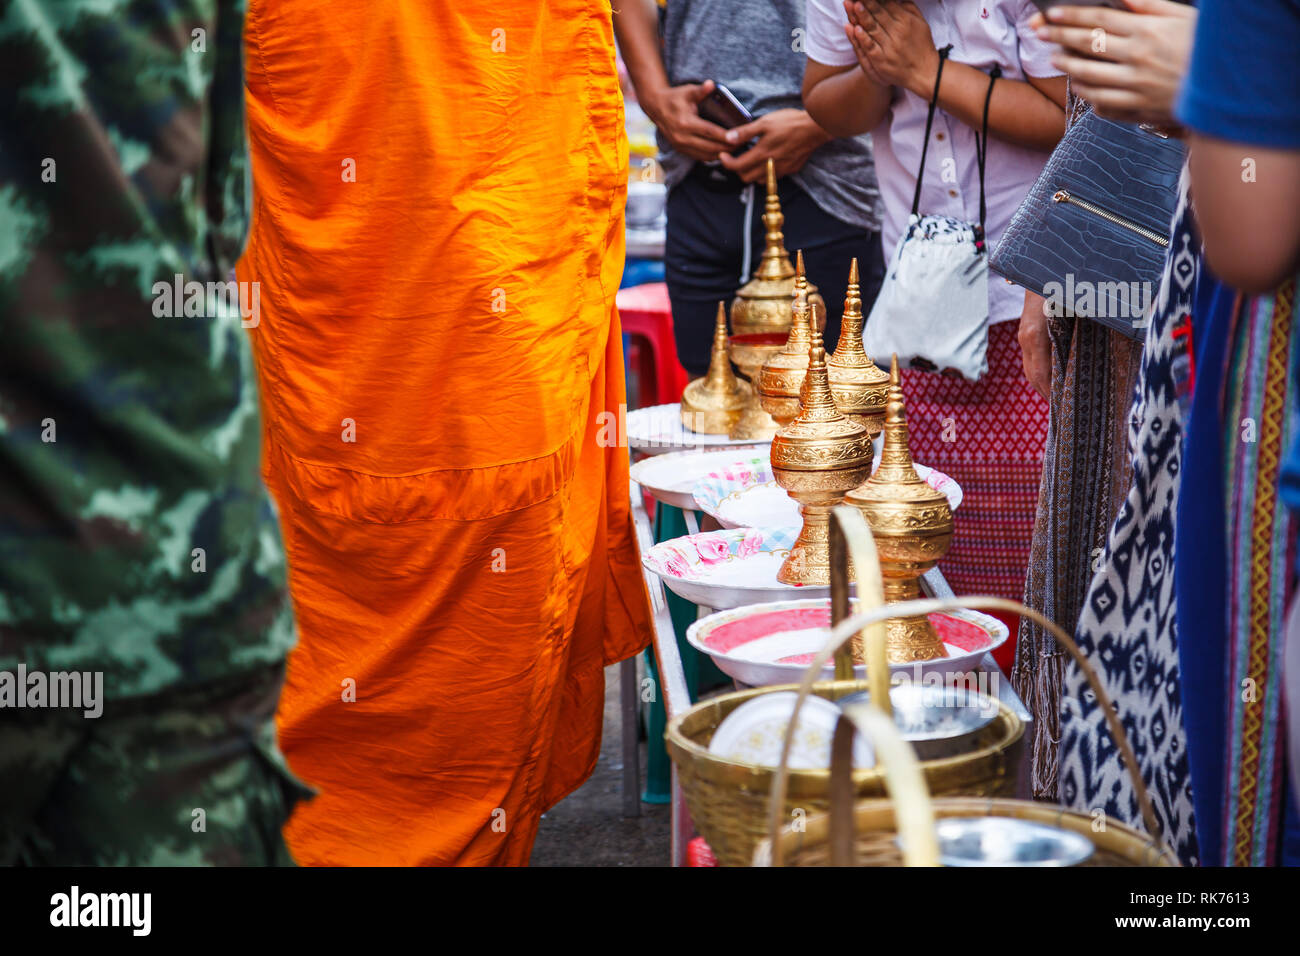 Laypeople make merits by giving food offerings to Buddhist monks going on daily alms round in morning at Mon Bridge, Sangkhlaburi, Kanchanaburi, Thail Stock Photo